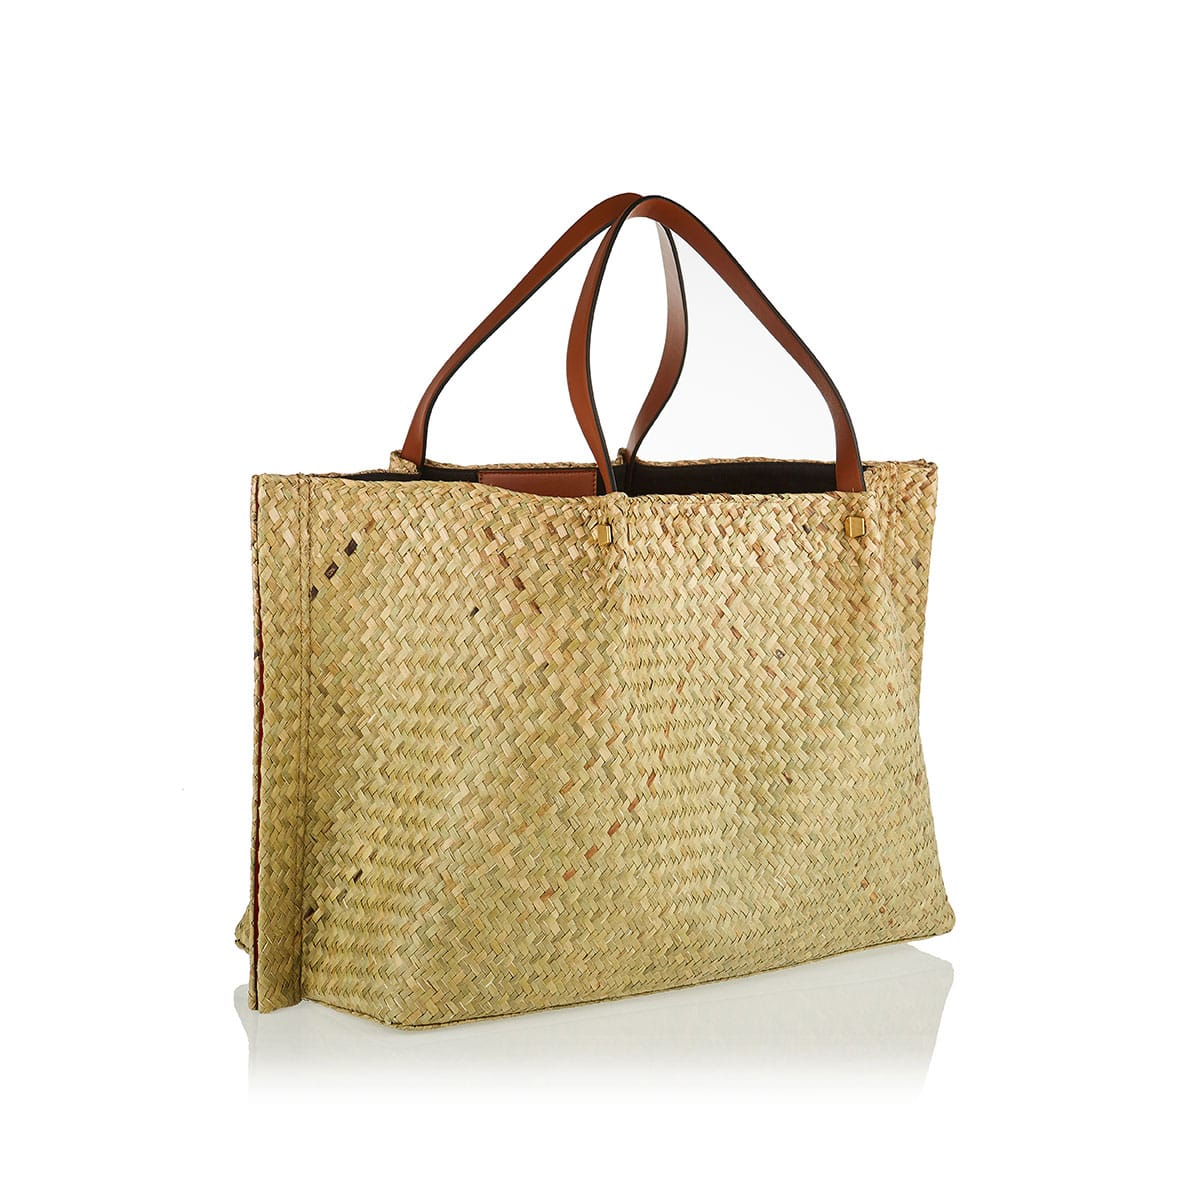 VLOGO Escape large straw tote